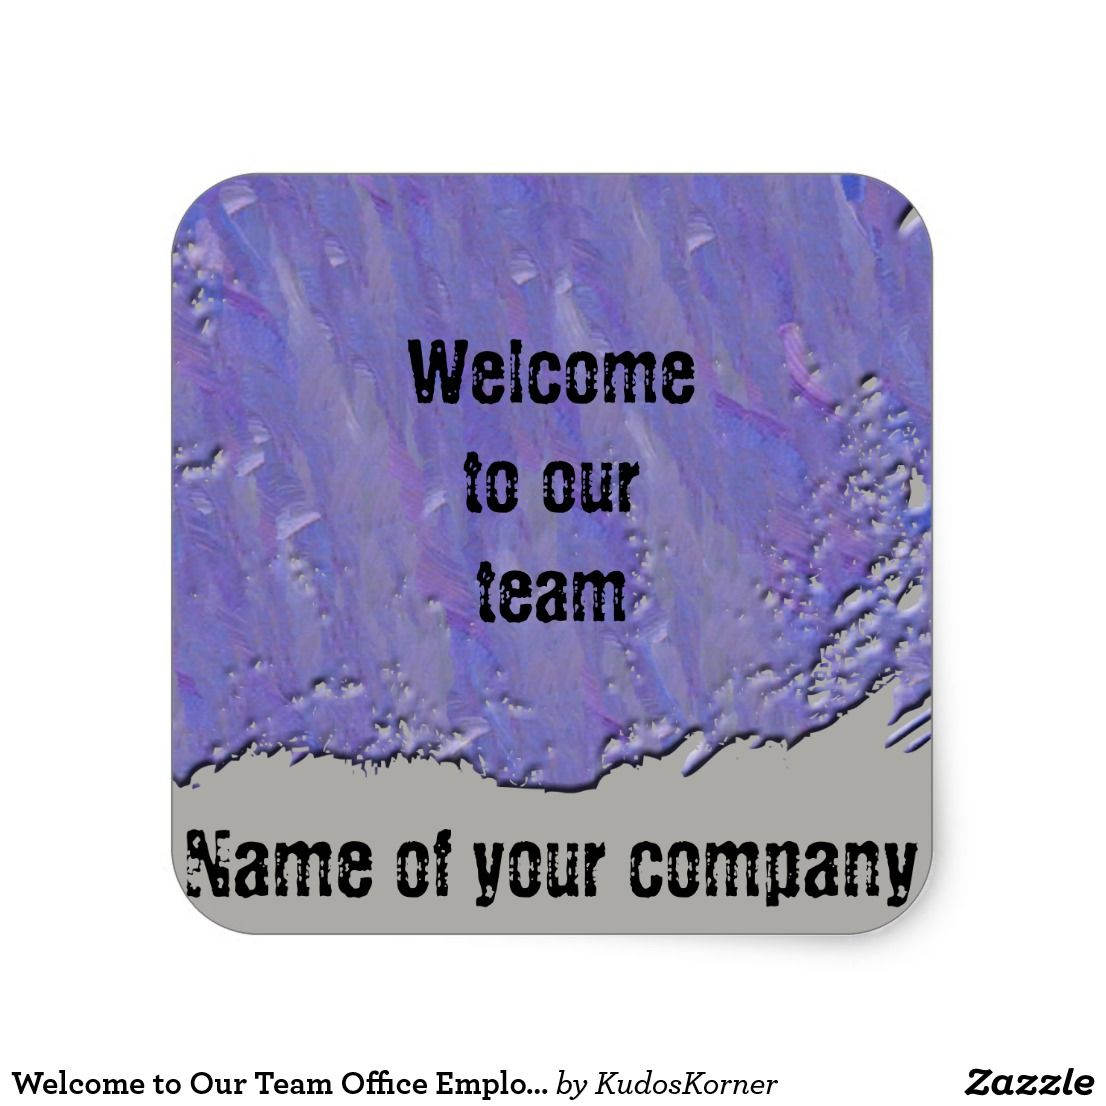 Welcome To Our Team Office Employee New Hire Square Sticker Zazzle Com Welcome To Our Team Office Team Activities For Kids